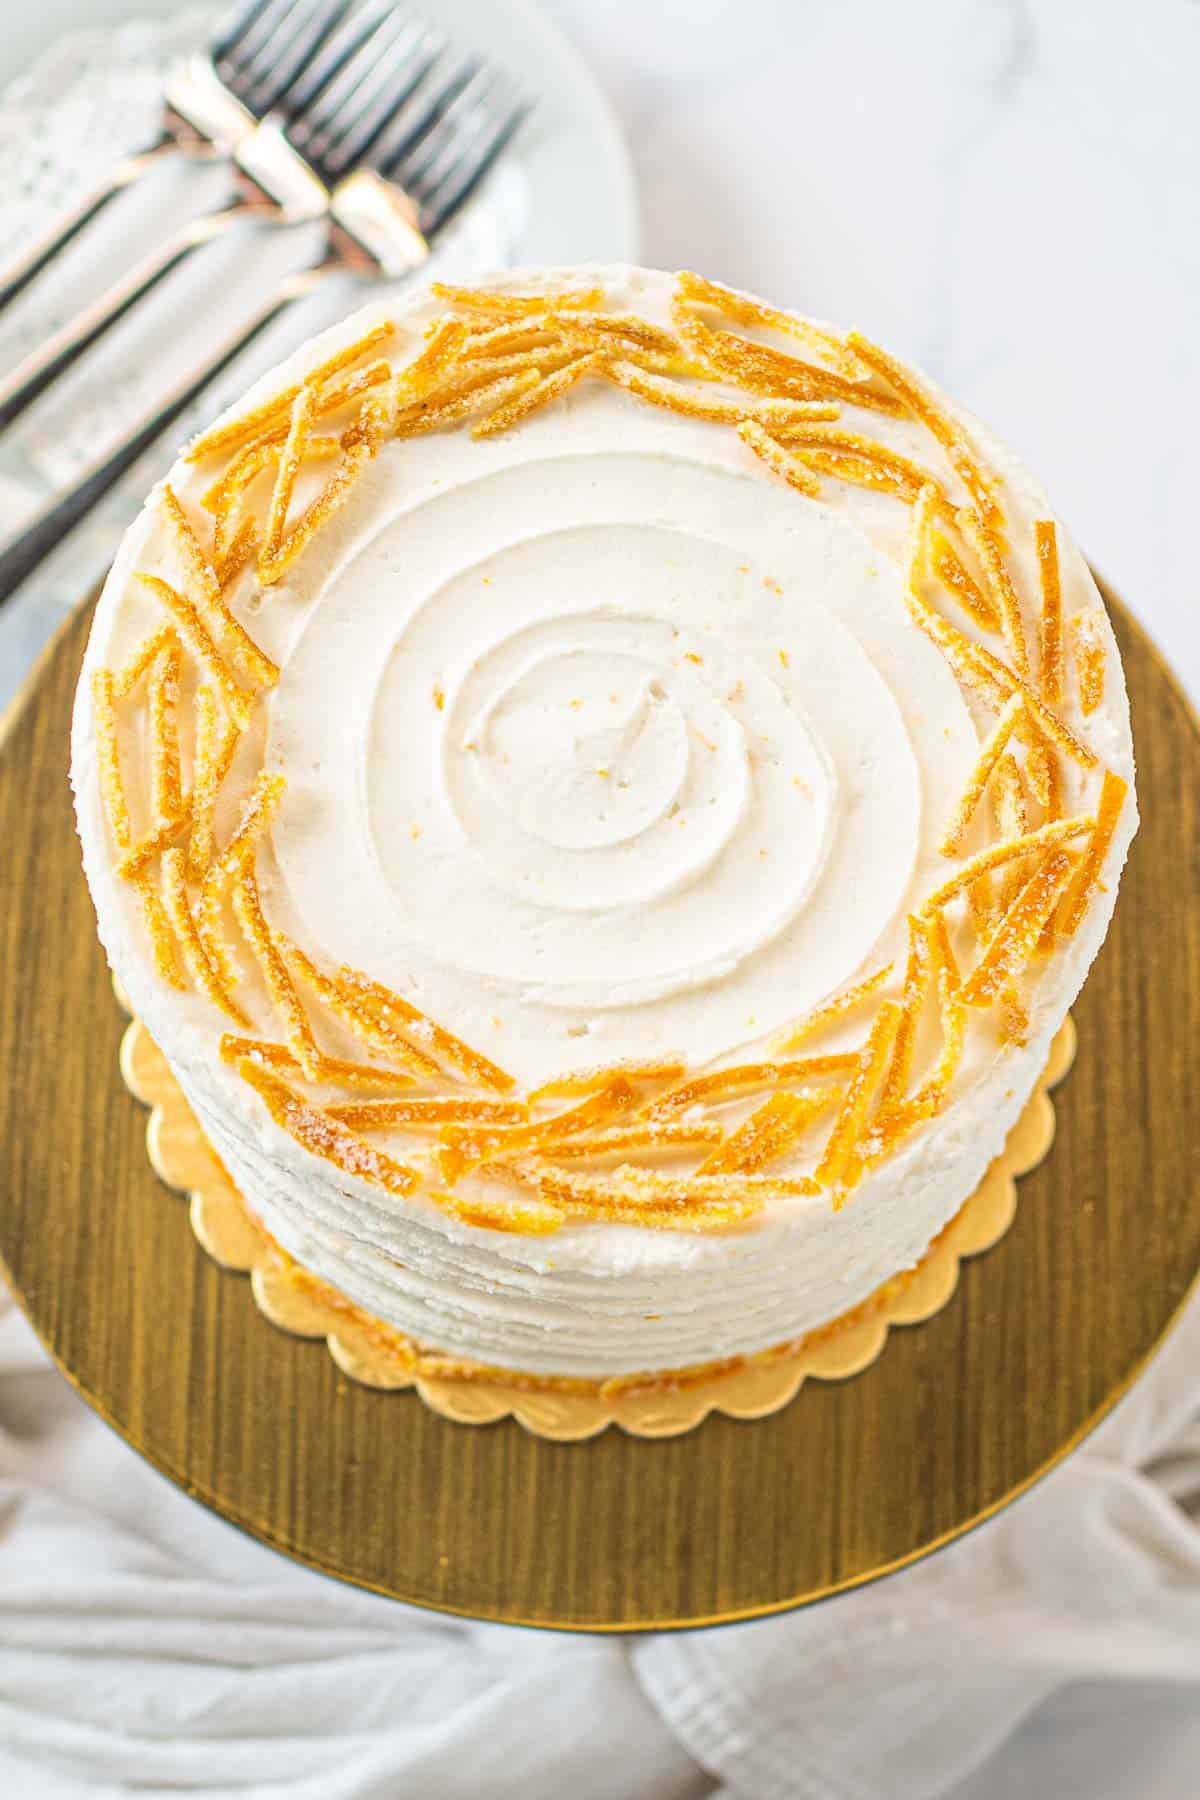 Top of a round cake decorated with candied orange peels